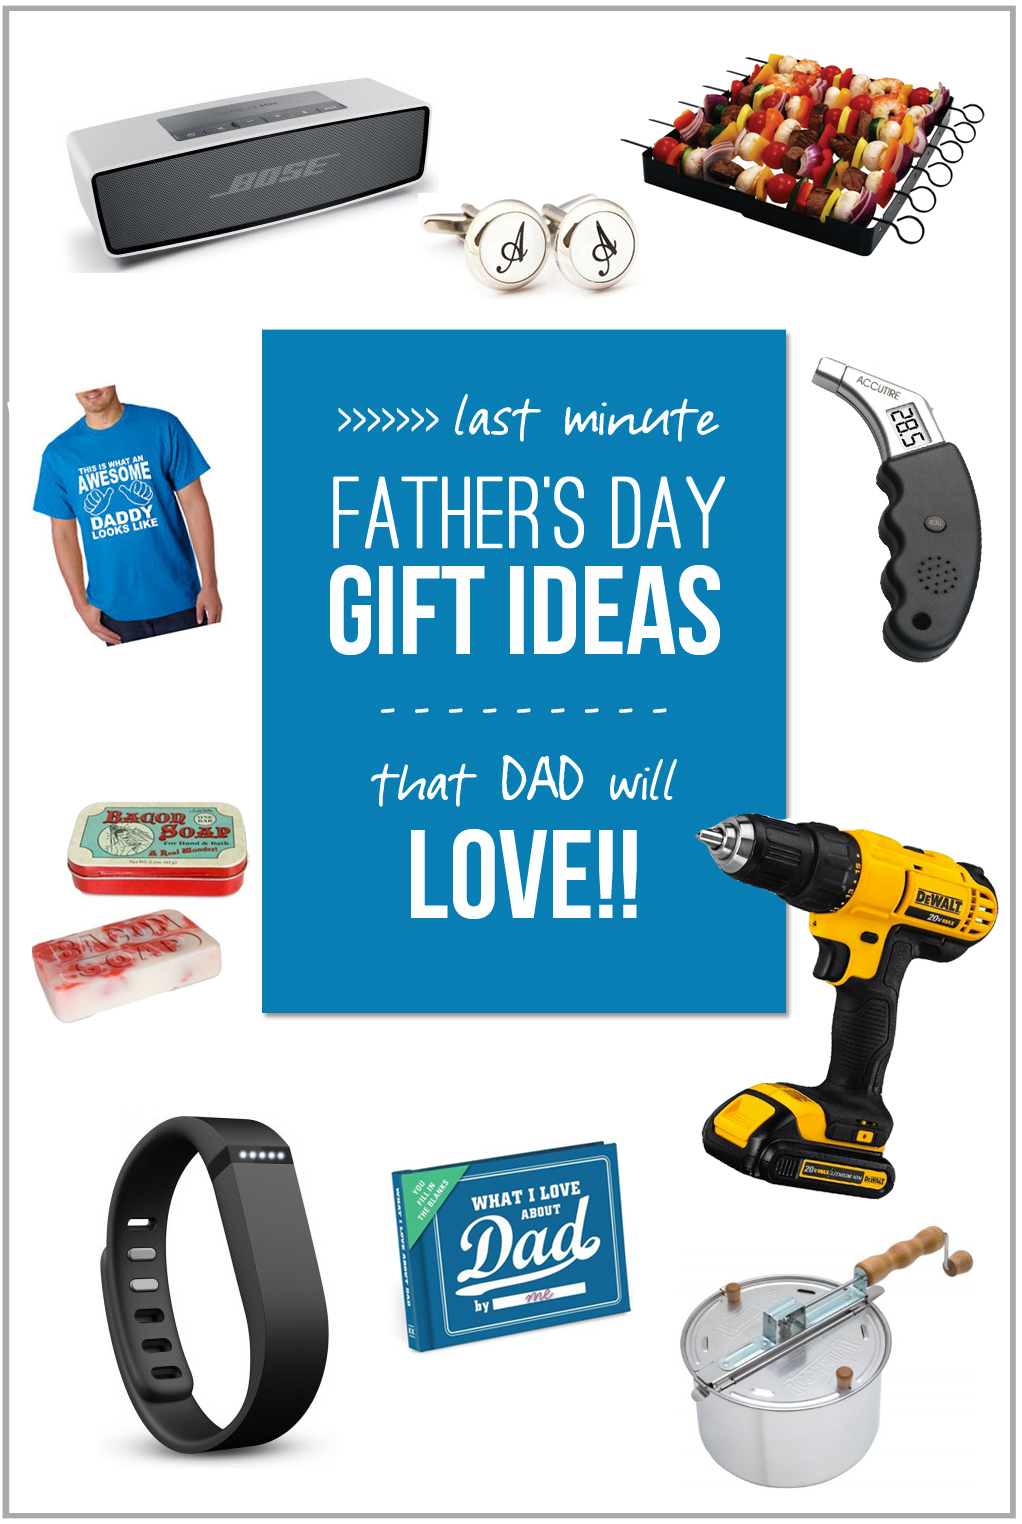 Last minute father's day gift ideas…that dad will love!